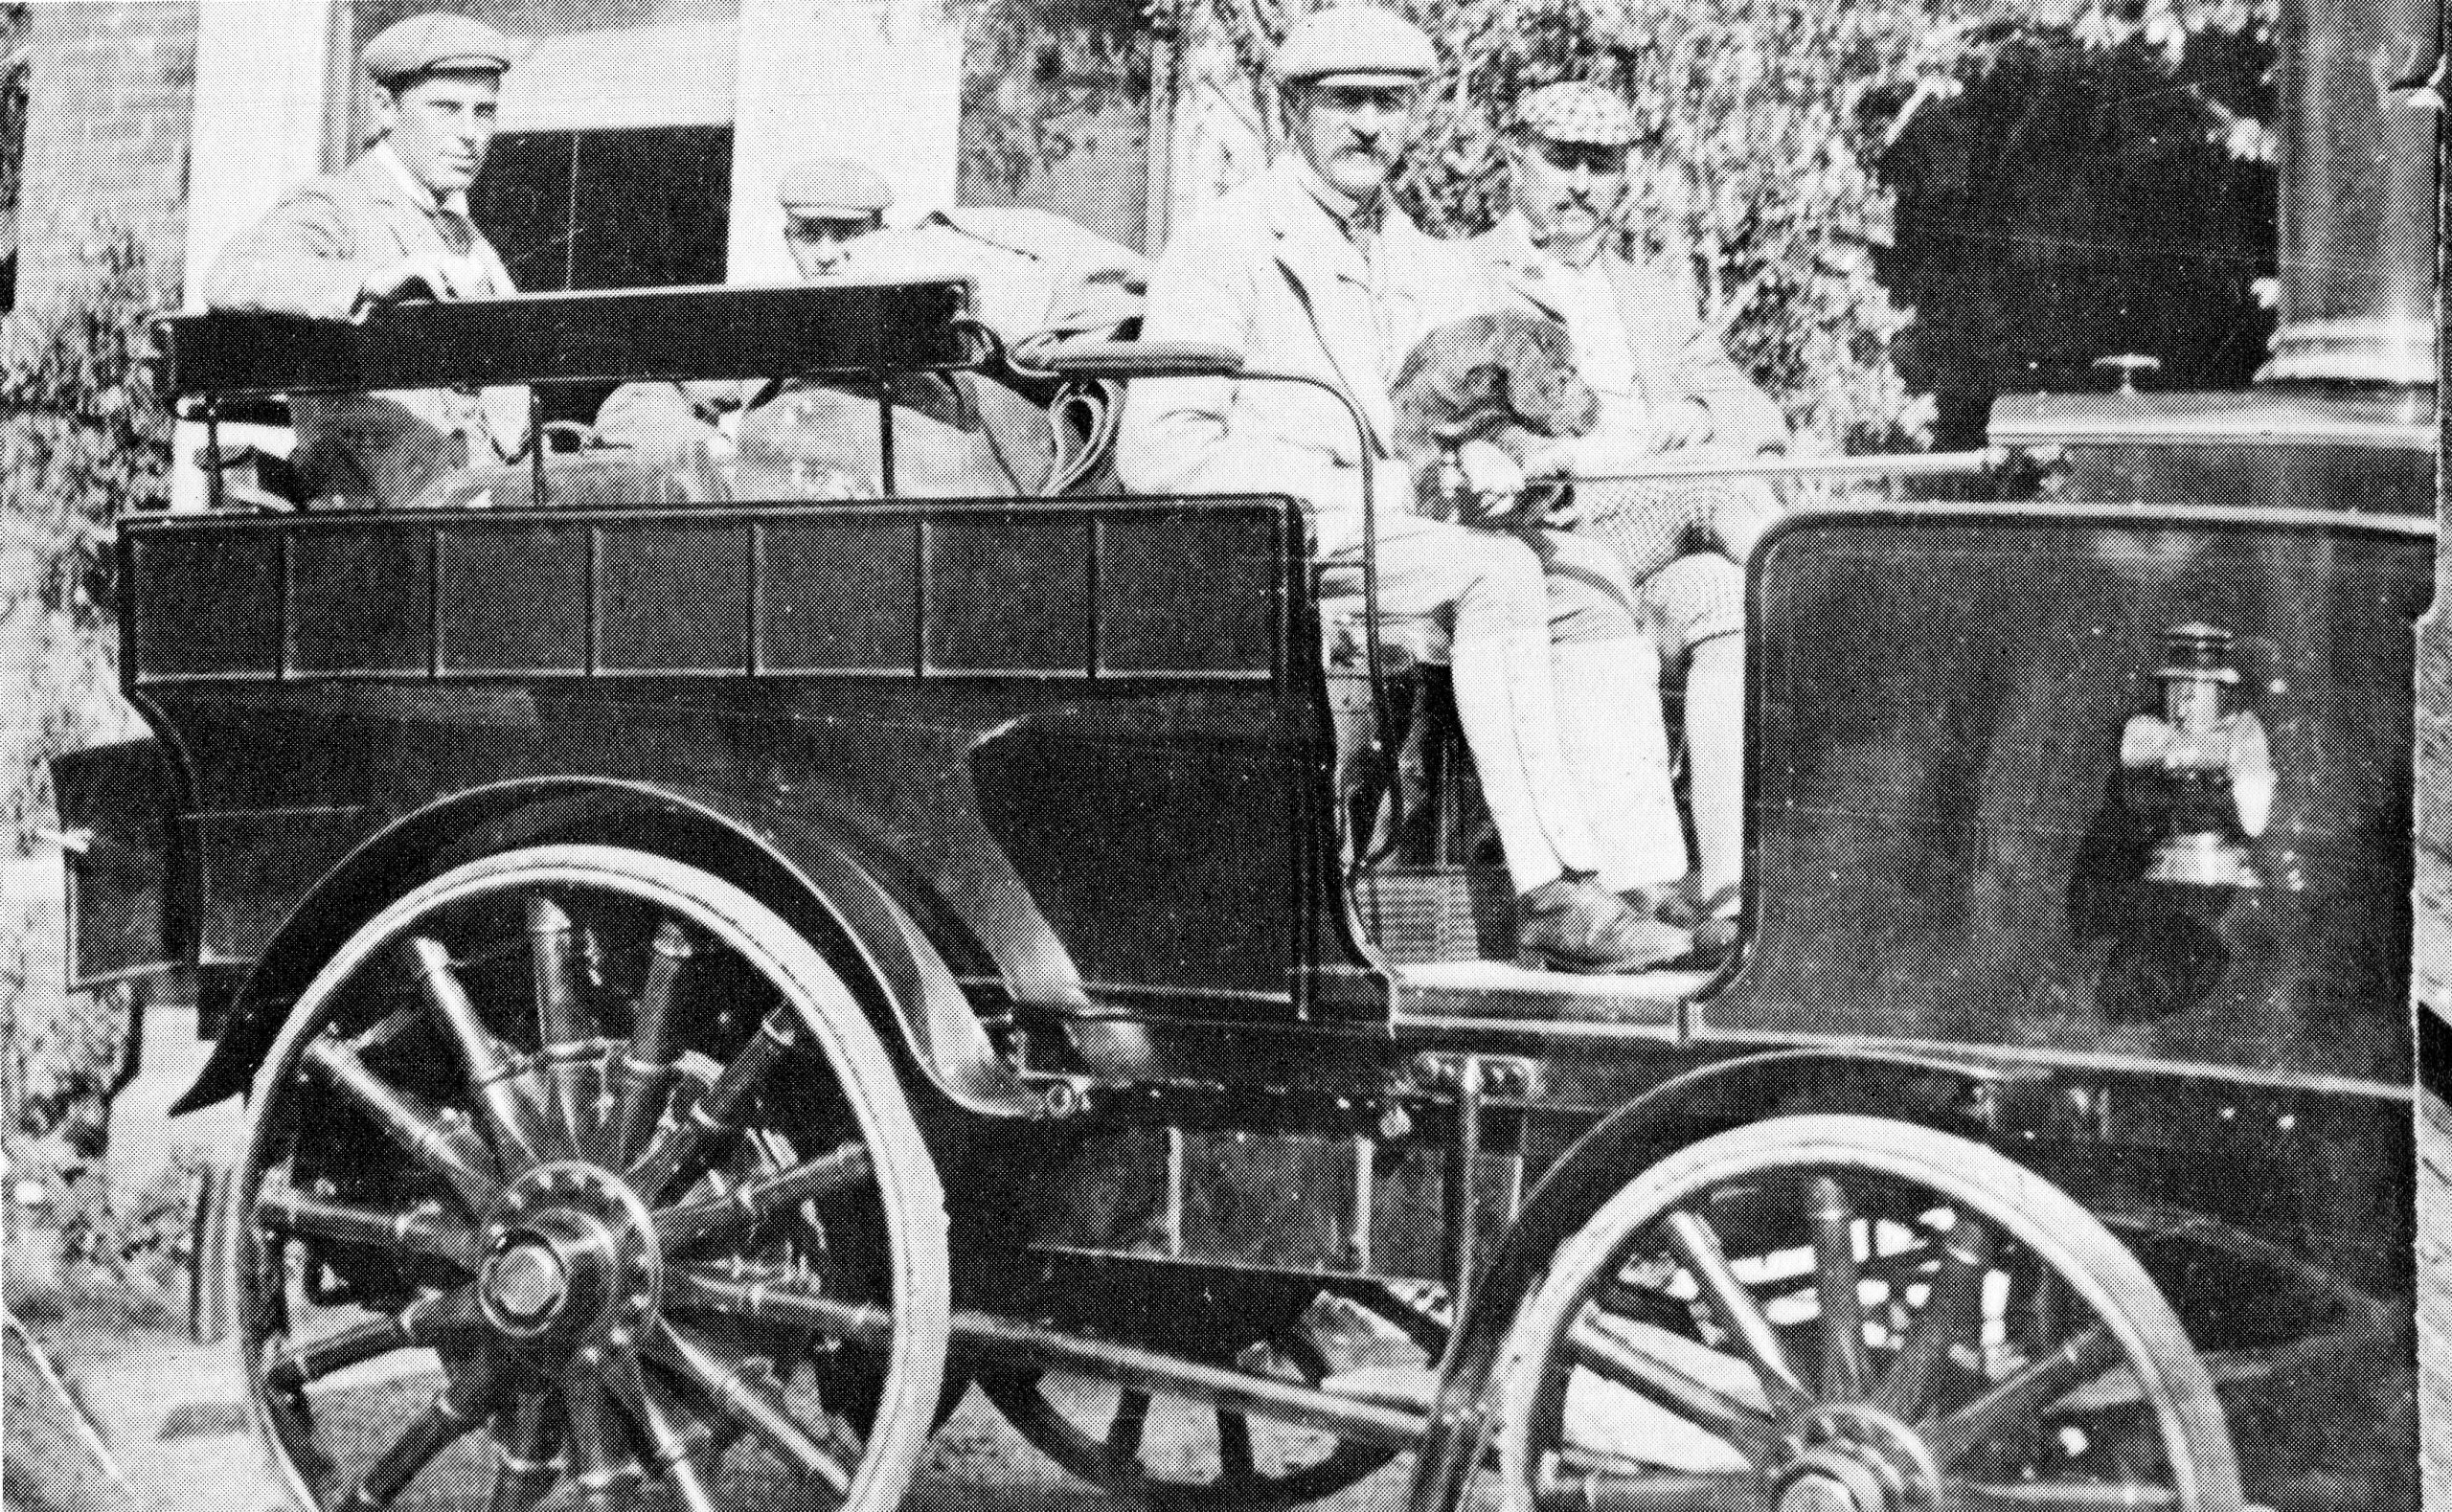 I:\New Milton Photographs and History\Wotton\Article for publication\Photo 4 Charles Dallas at the wheel of steam car. Jack Card sat in the back..jpg